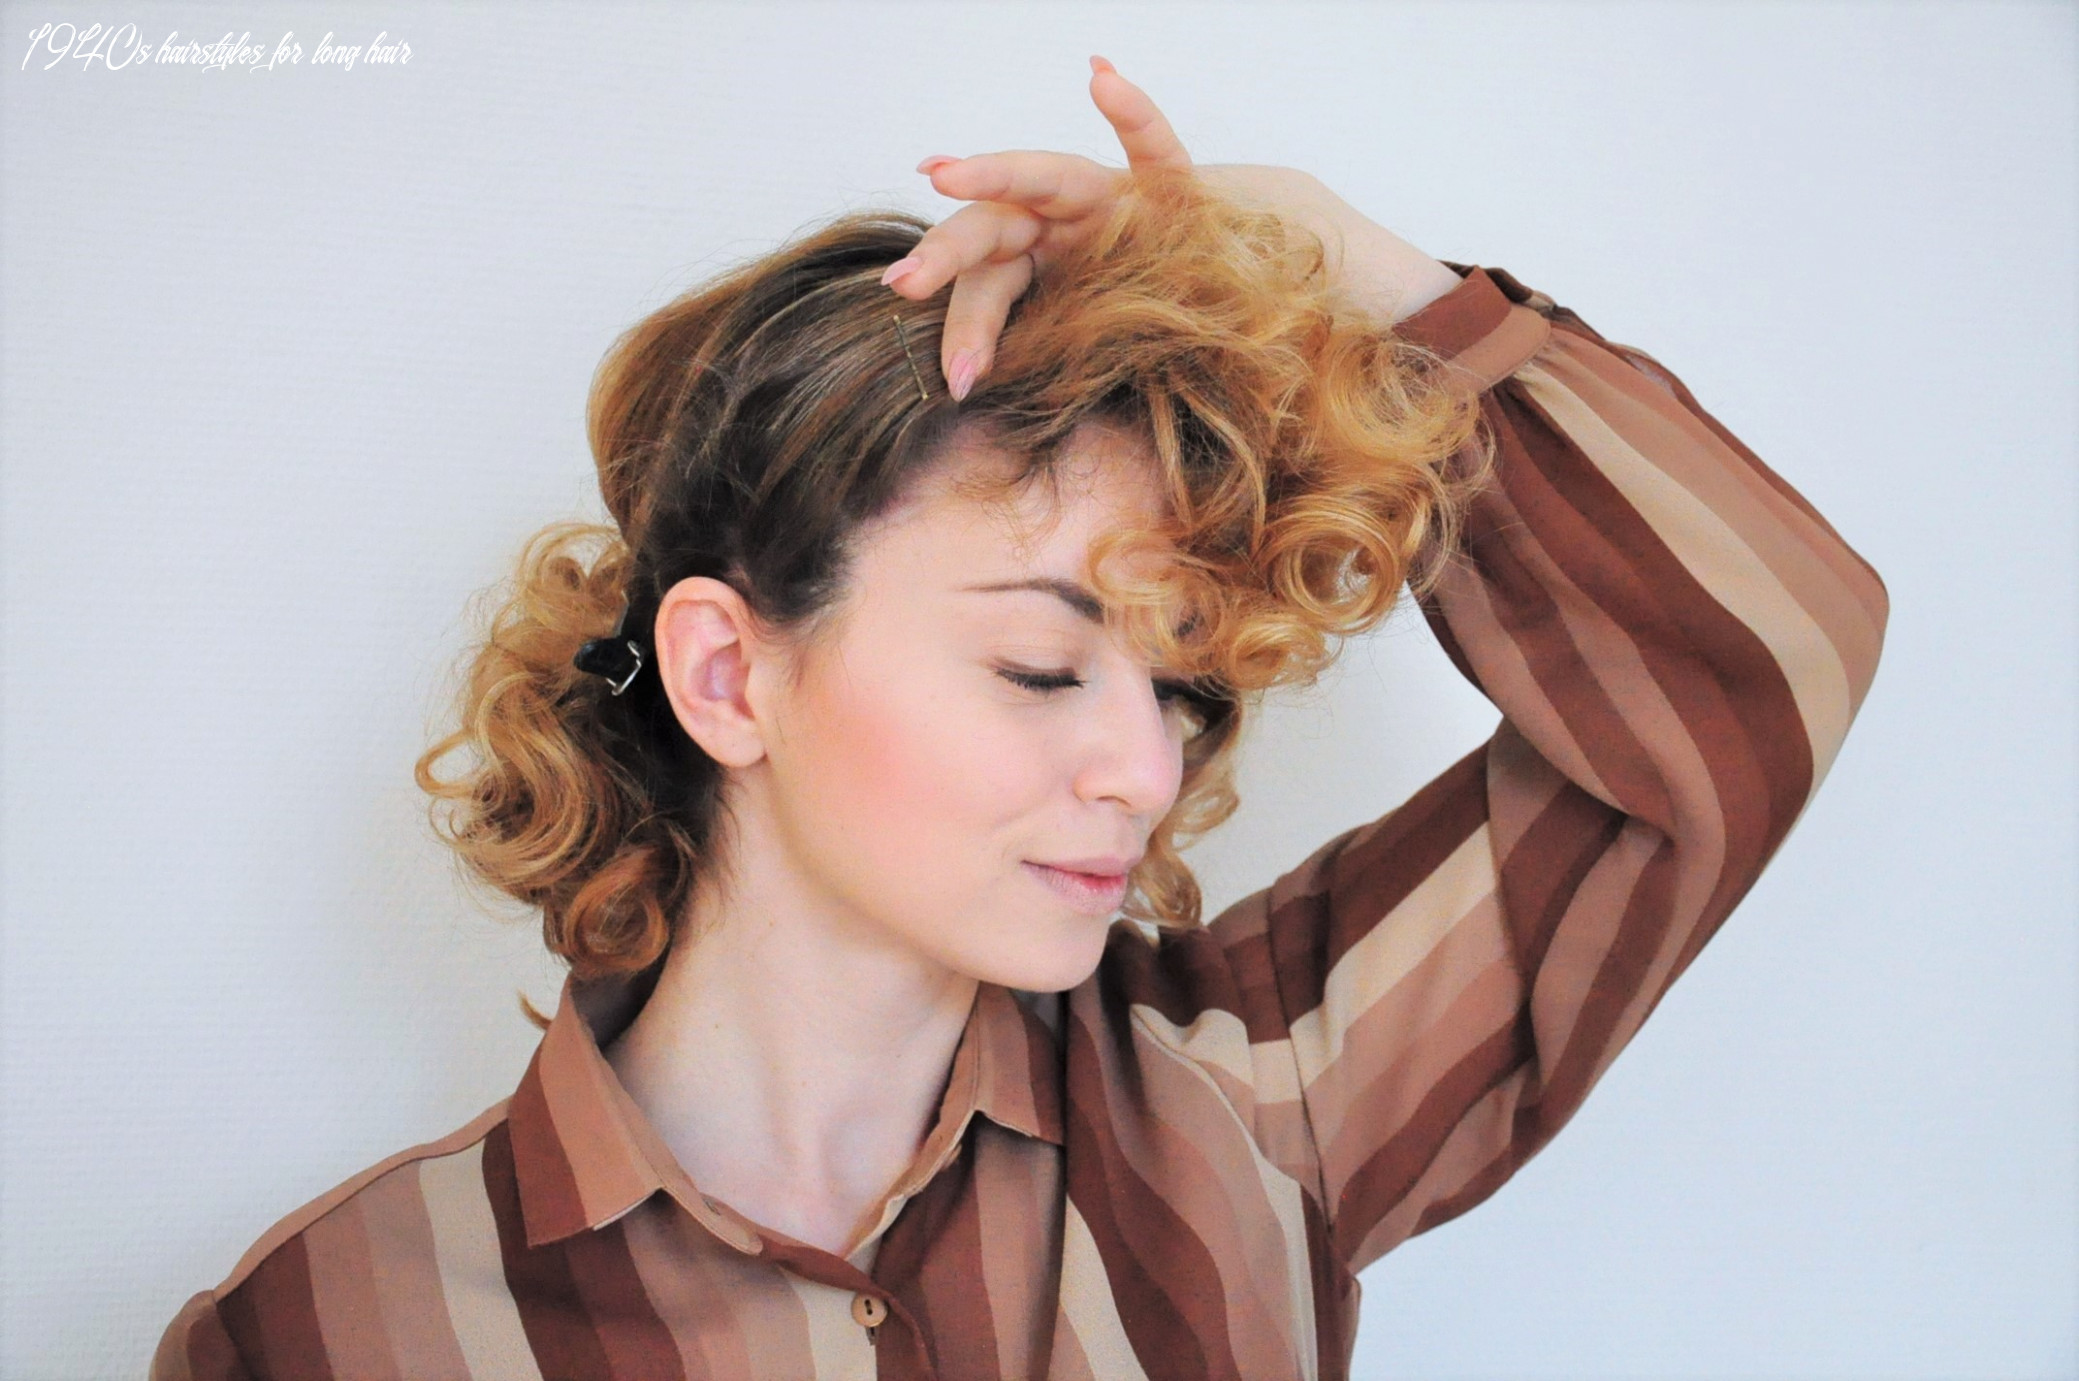 Curly 8s hair - Easy photo tutorial for a vintage 8s hairstyle